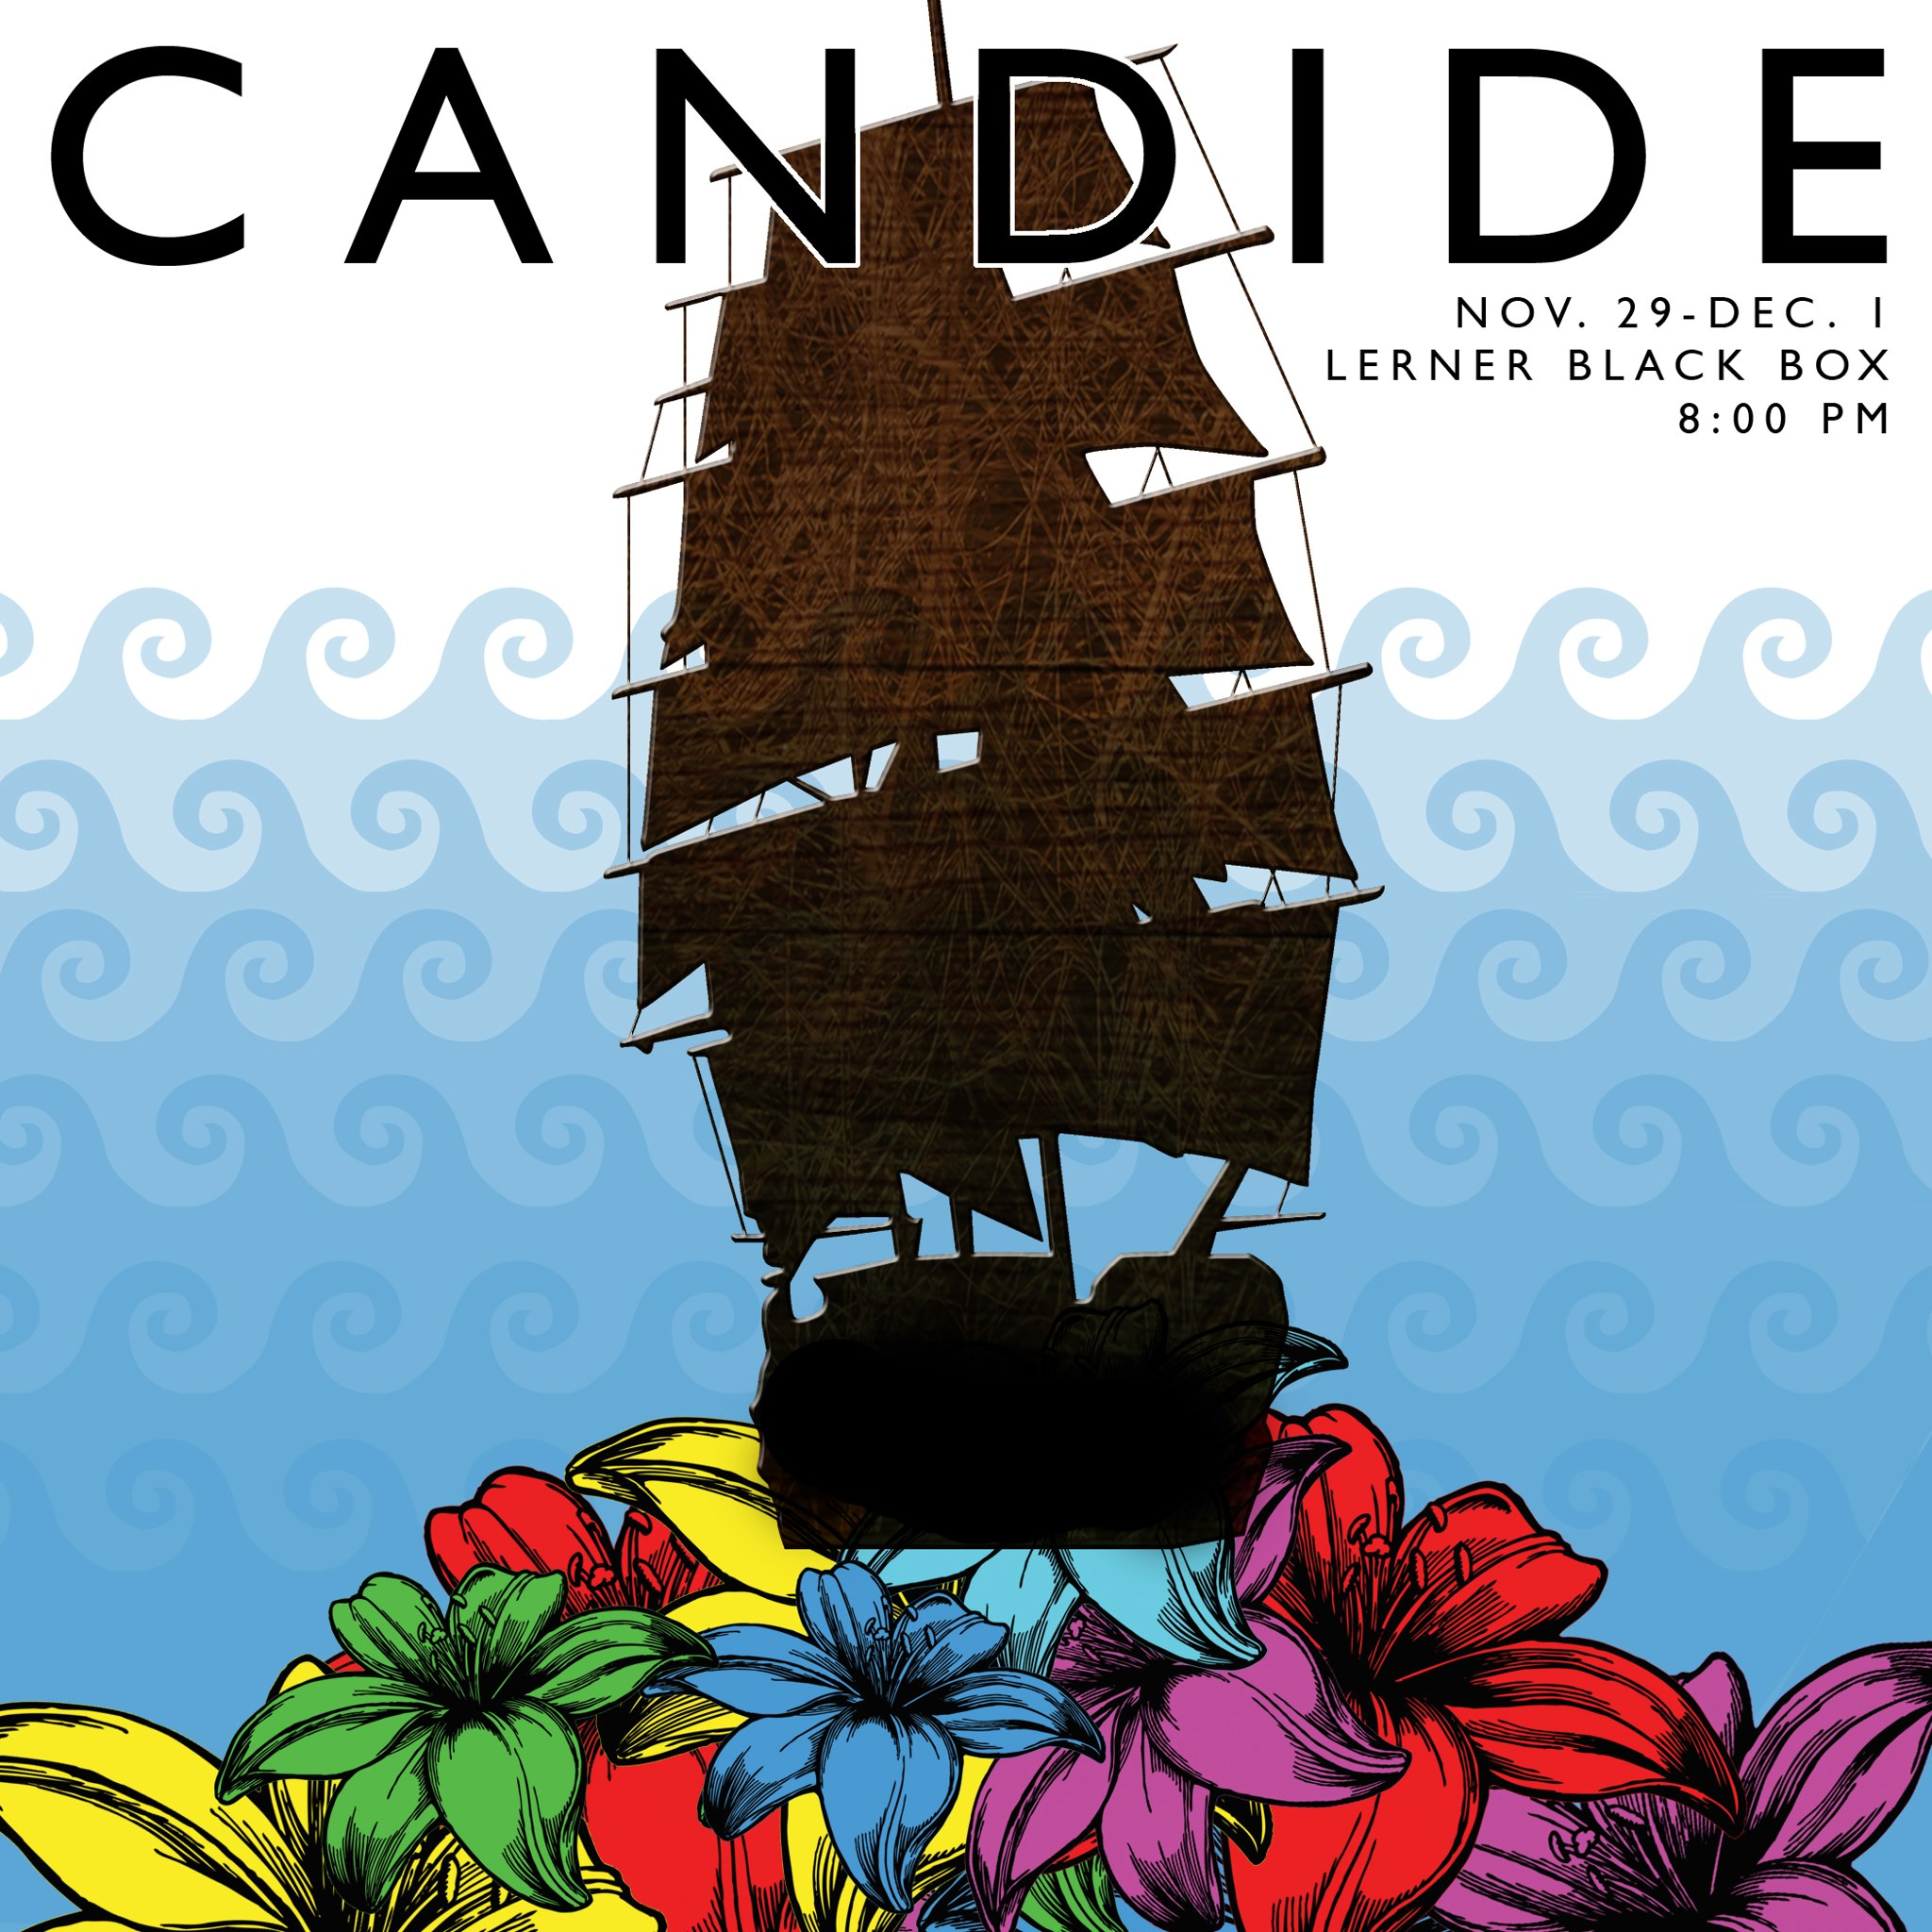 candide a satire on the enlightenment Purpose: to explore the ideas and concerns of the enlightenment   philosophical positions represented by pangloss (a satire of leibniz), martin and  candide.